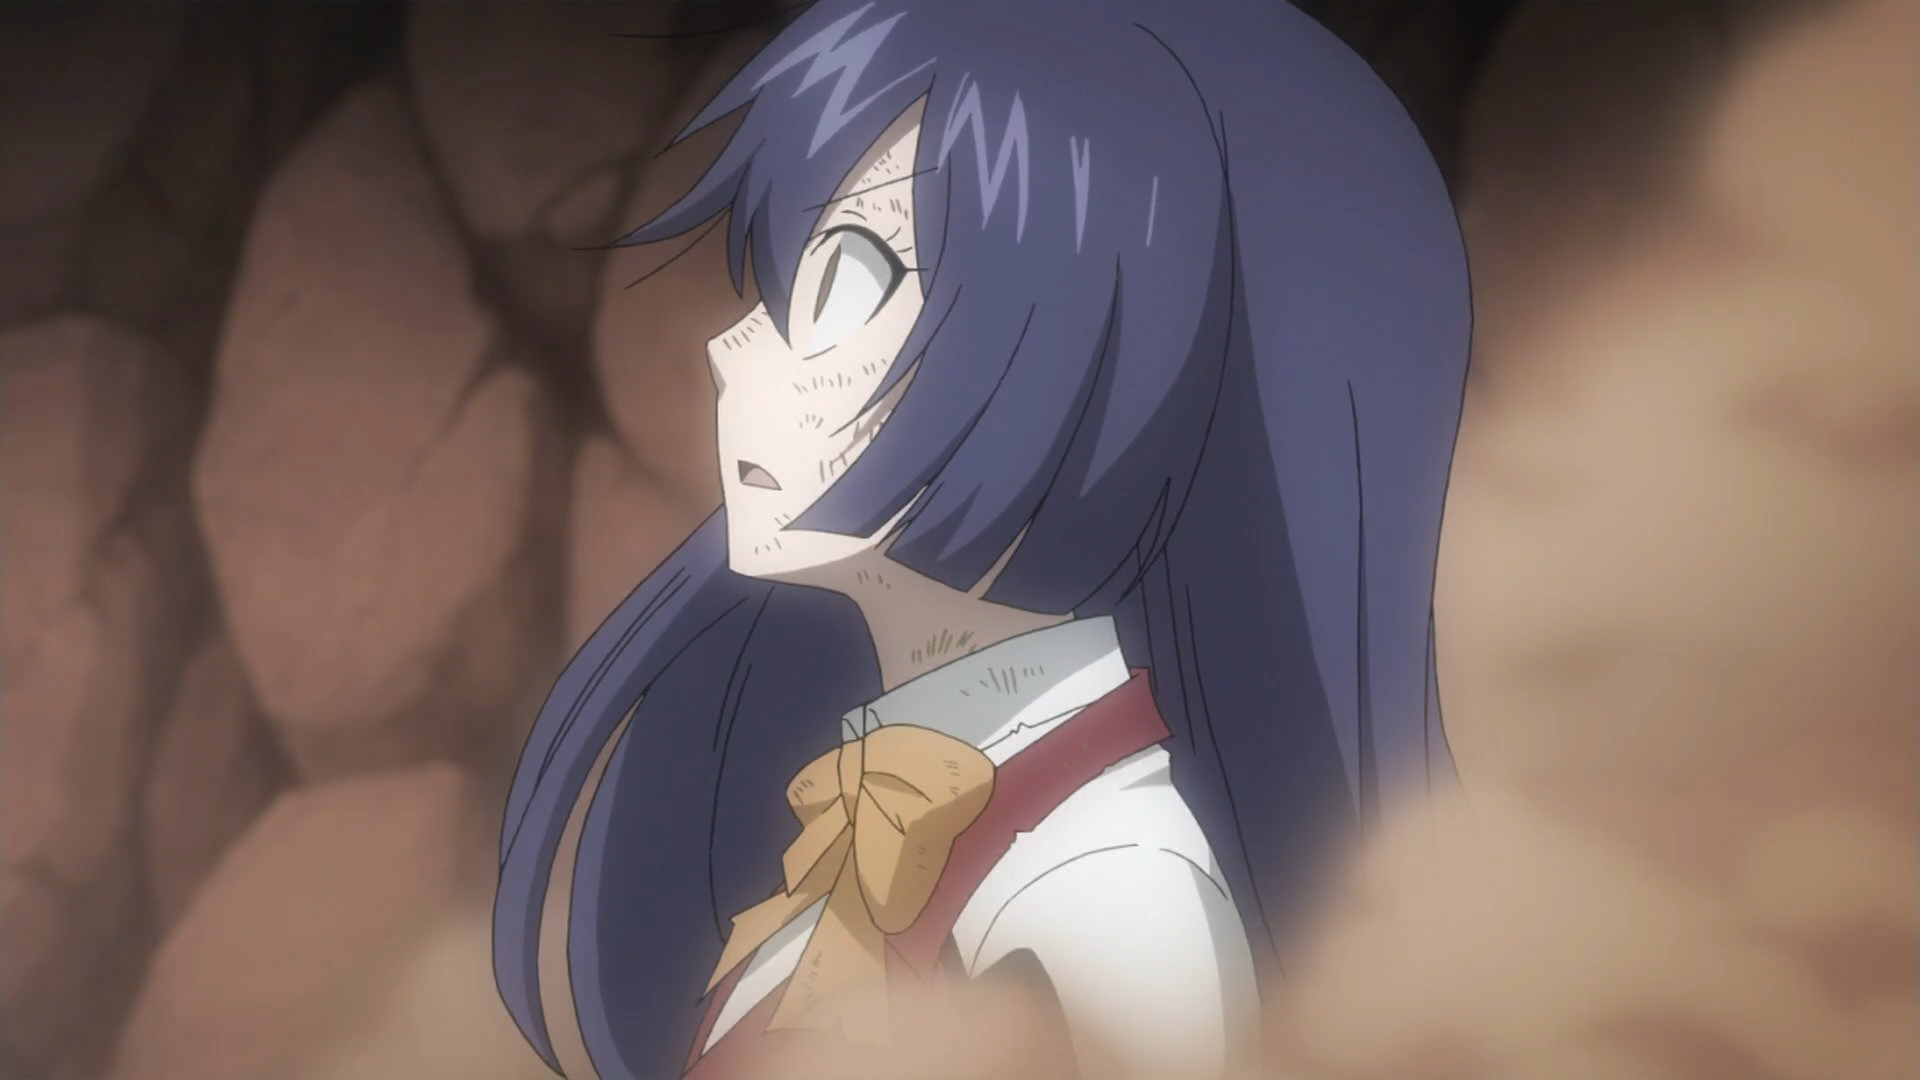 [HorribleSubs] Fairy Tail S2 - 69 [1080p]_001_11281